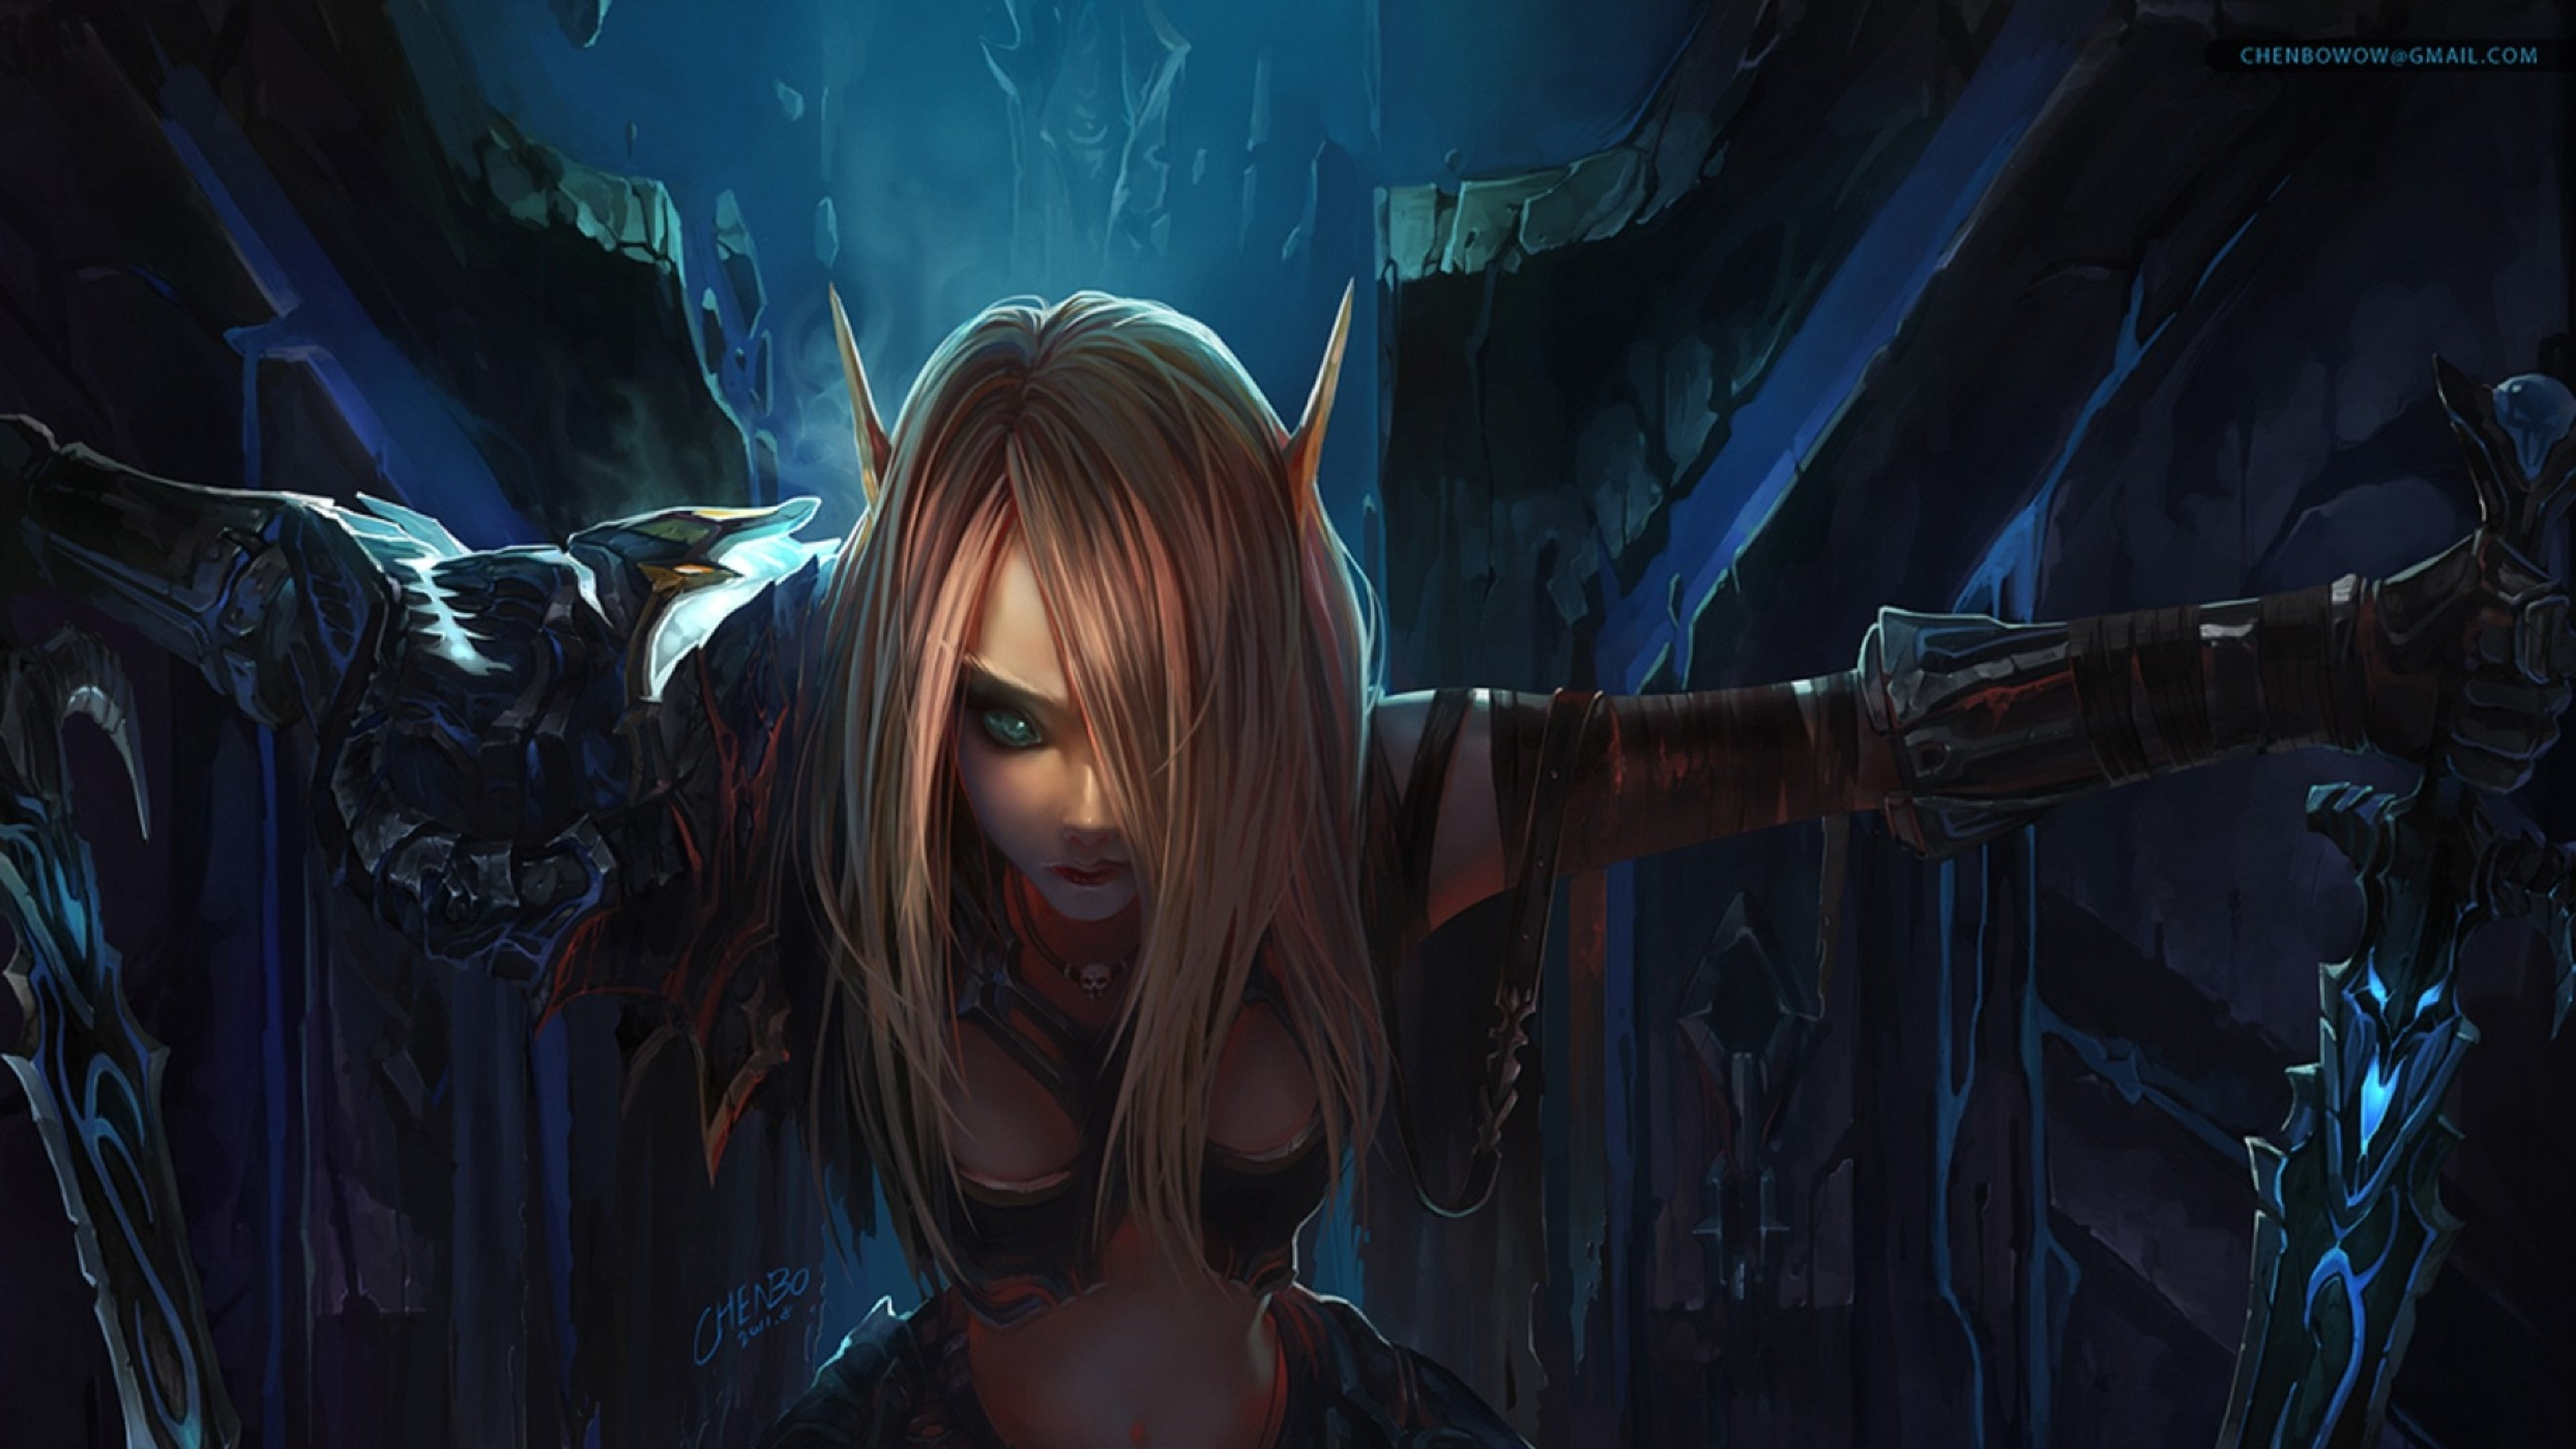 3840x2160 Preview wallpaper world of warcraft, elf, girl, hair, eye